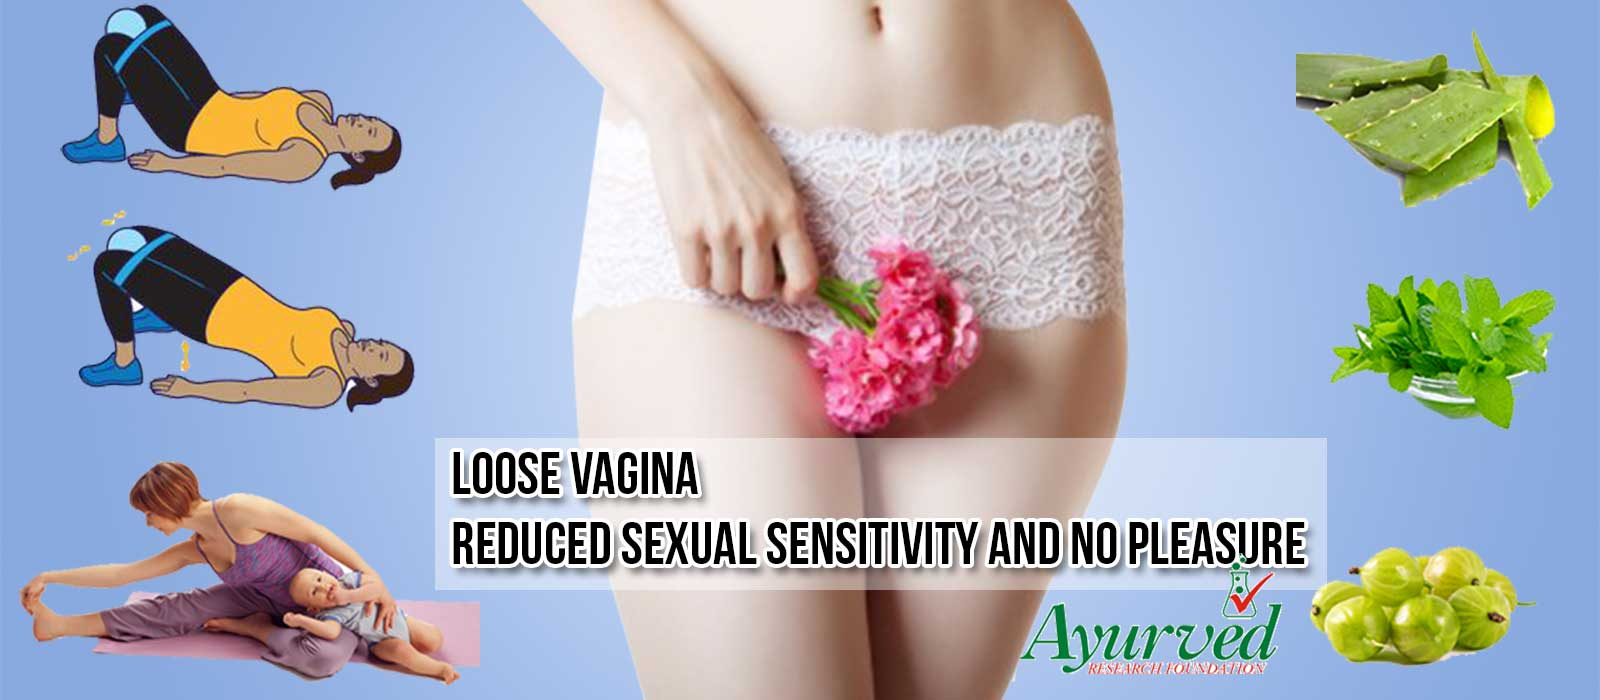 Are womens vagina looser after they lose virginity